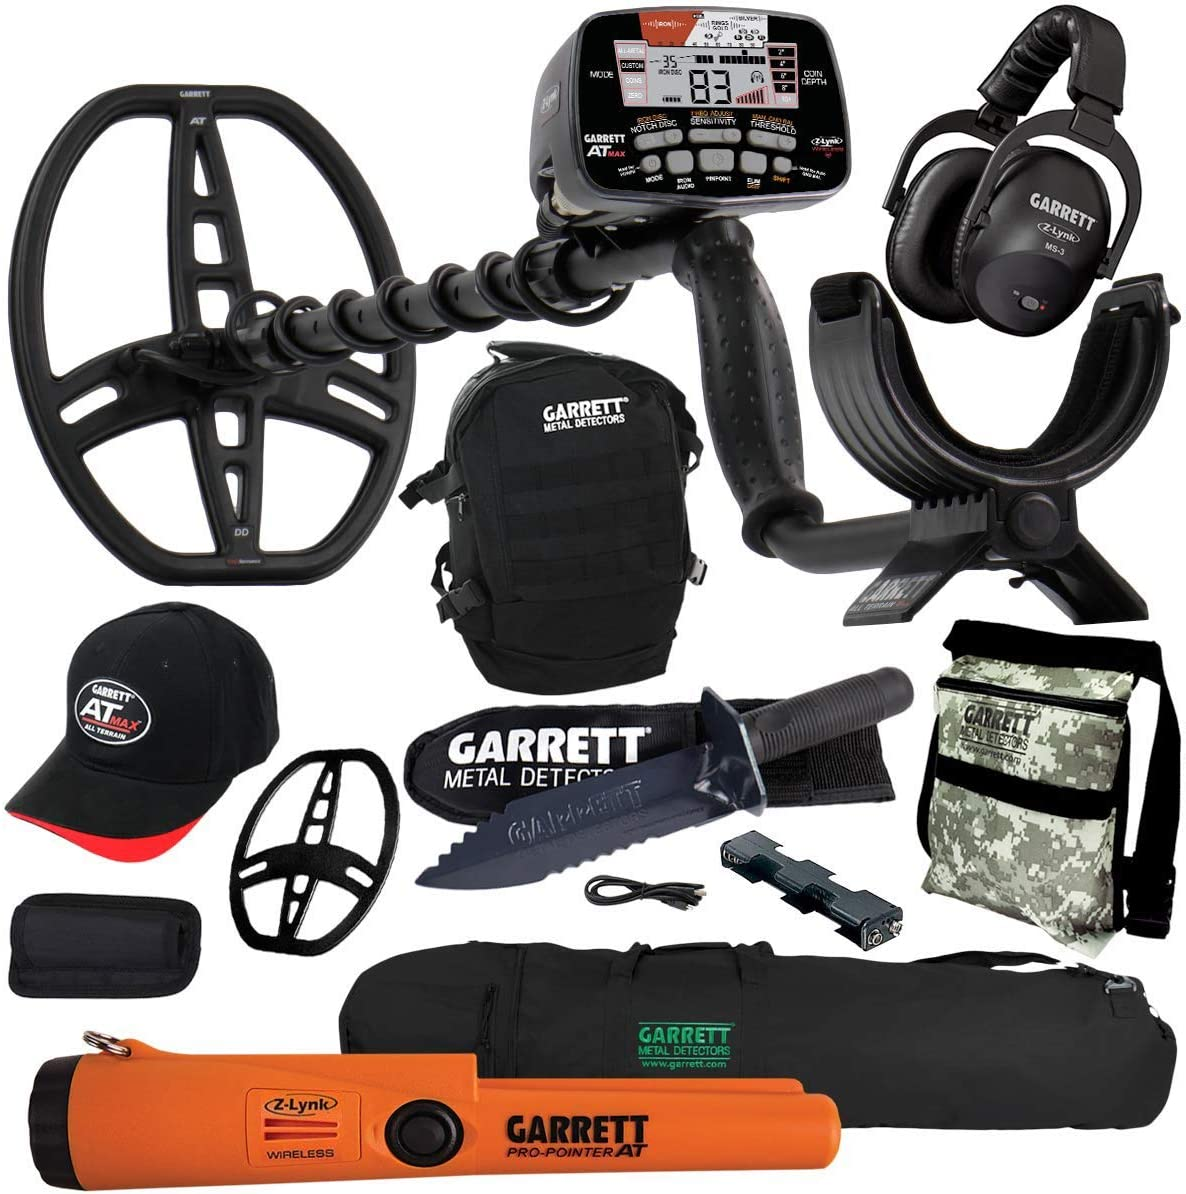 Garrett at MAX Metal Detector with MS-3, Pro-Pointer at Z-Lynk, Carry Bag More Pack 1